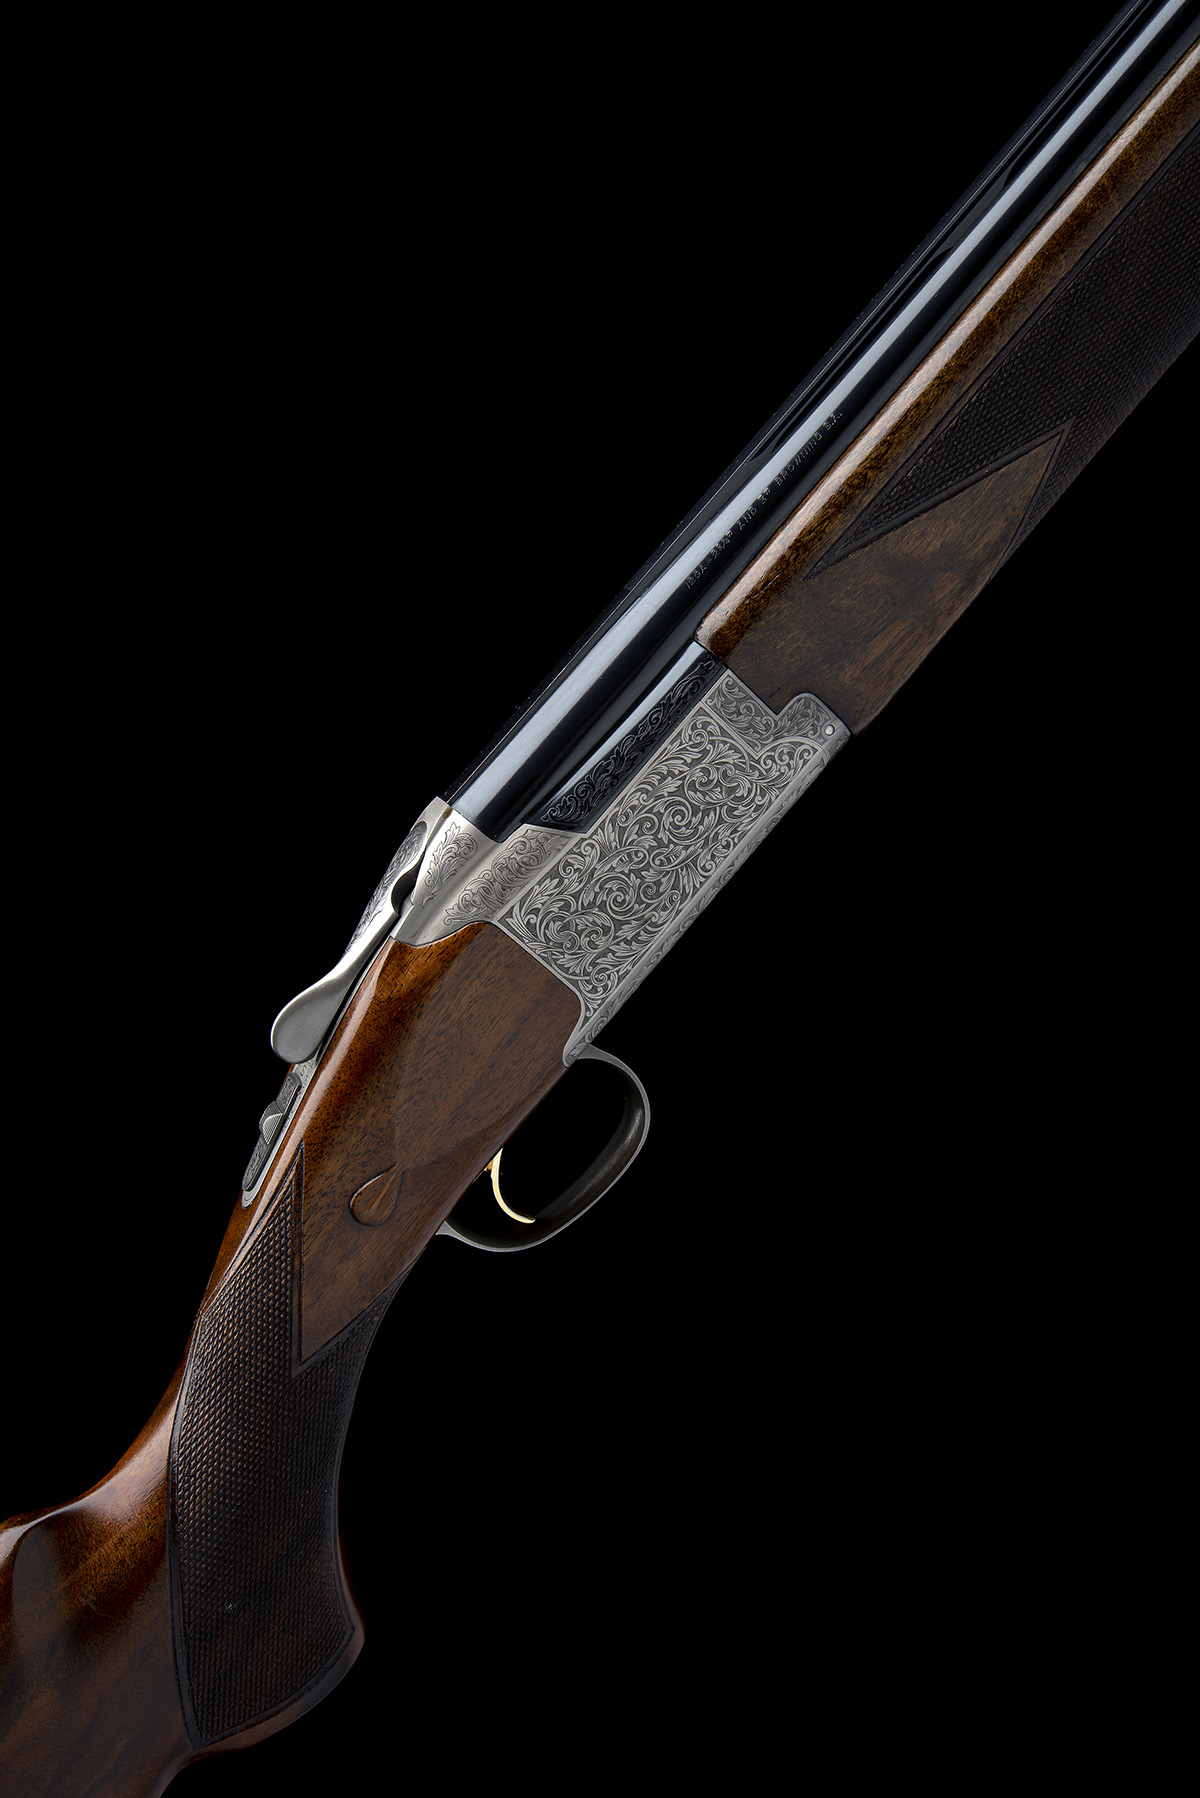 BROWNING A 12-BORE (3IN.) 'B725 SPORTER G5' SINGLE-TRIGGER OVER AND UNDER EJECTOR, serial no.